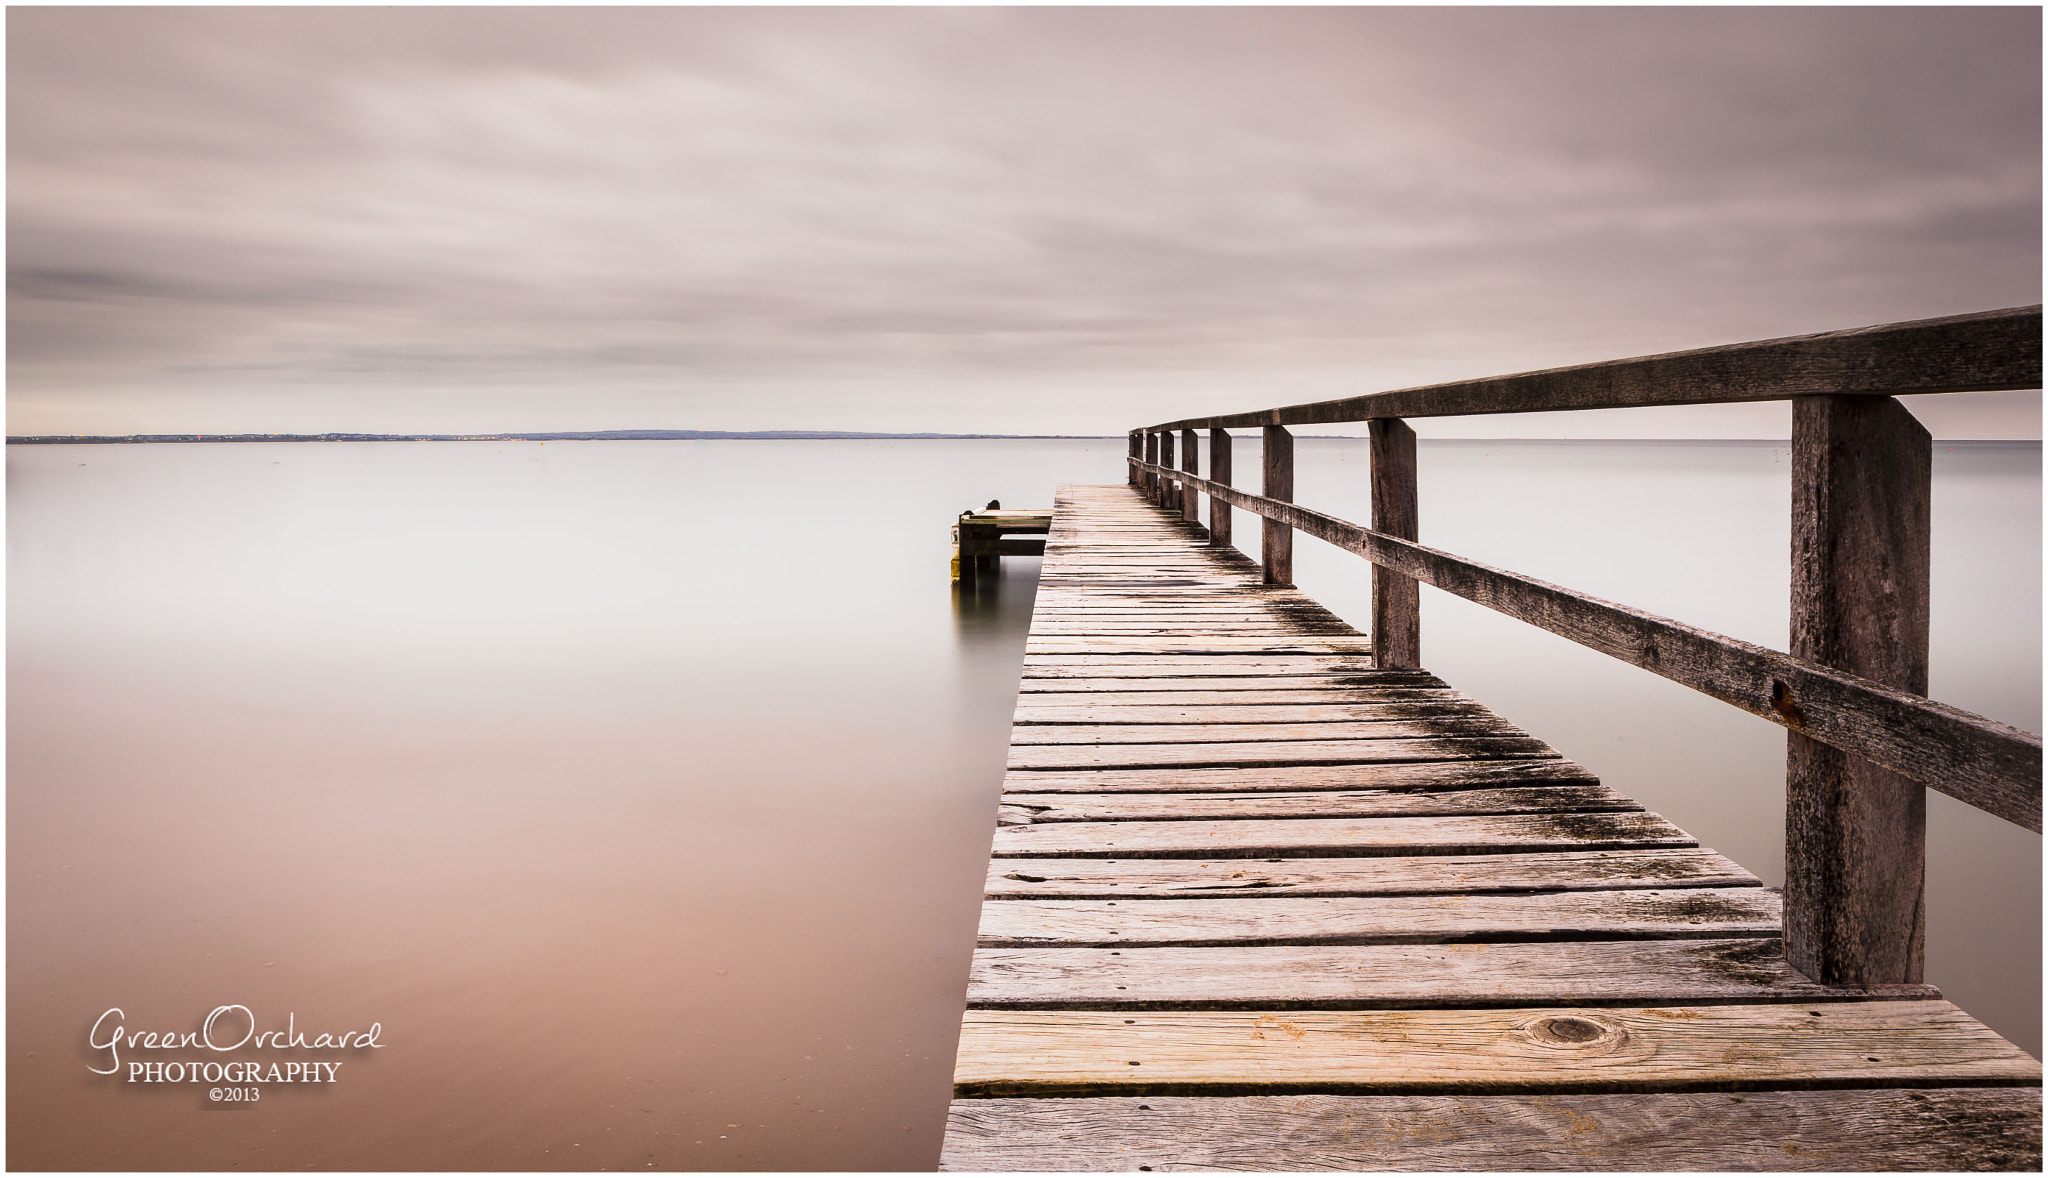 Photograph Simply Calming by Green Orchard Photography on 500px